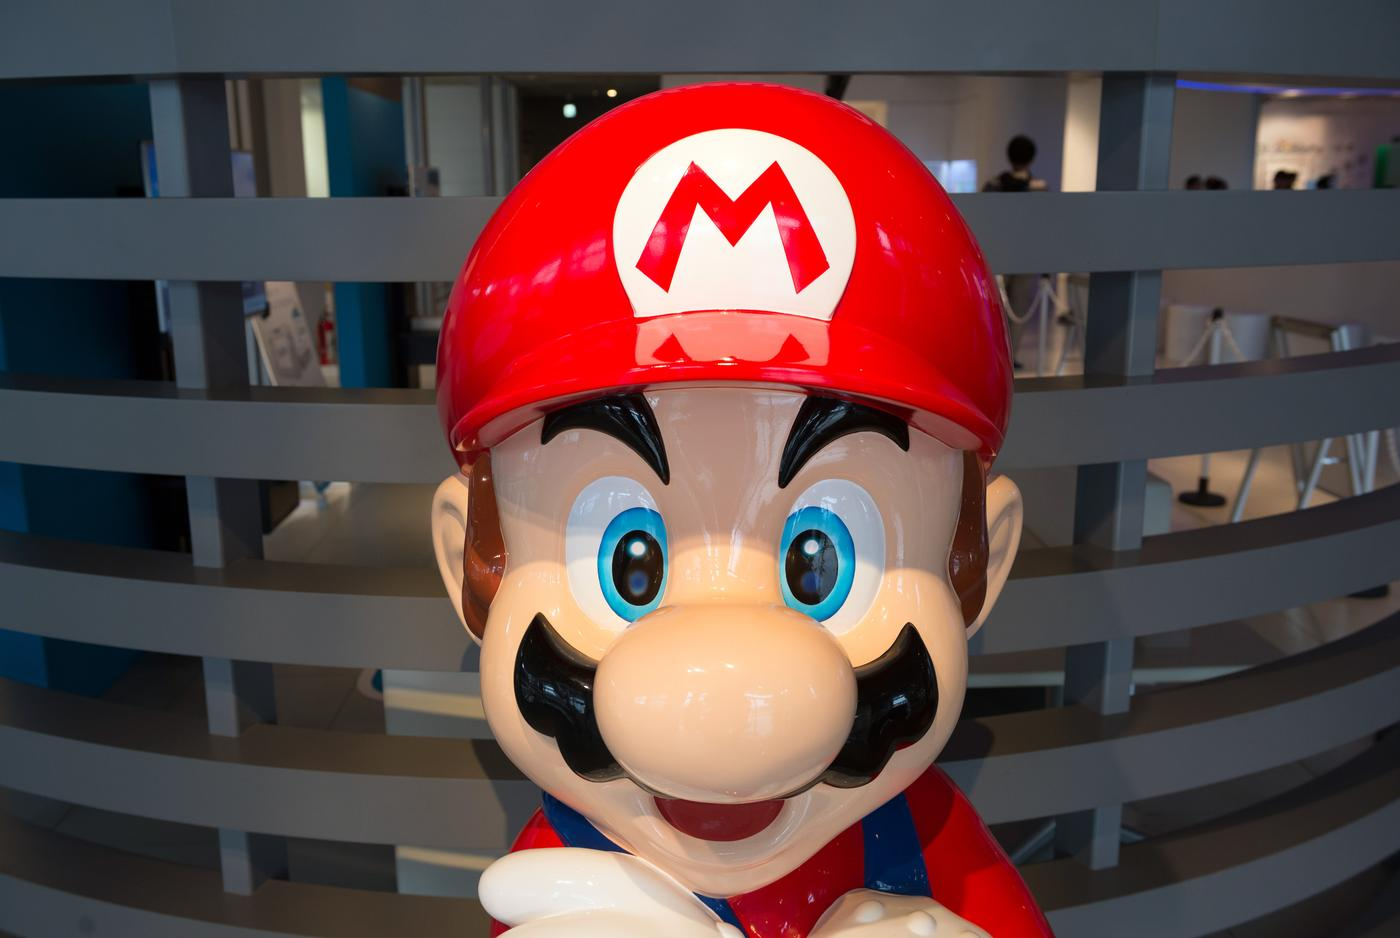 The house of Mario has a new boss